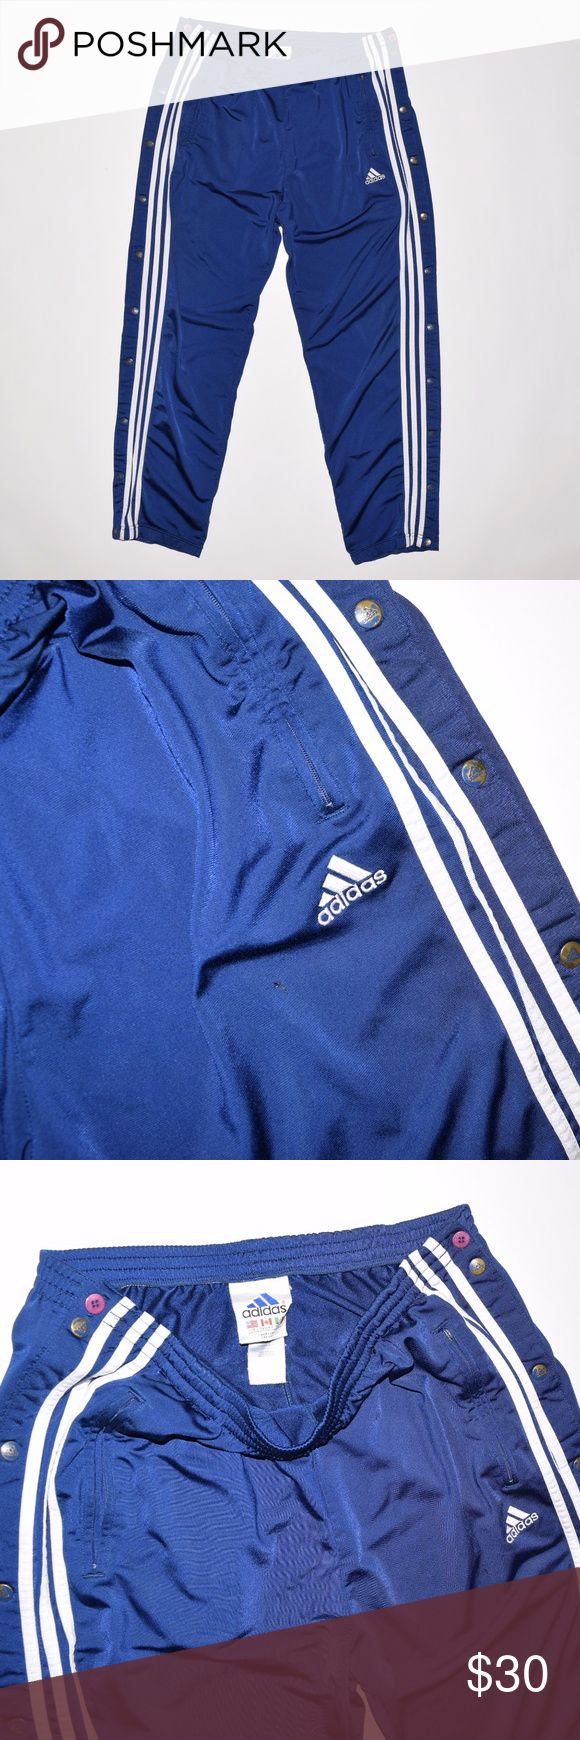 Rare 80's 90's Vintage VTG Adidas Breakaway Pants Brand: Adidas   Item name: Rare 80's 90's Vintage Men's Breakaway Warm Up Pants  Color: Blue /  White  Condition: This is a pre-owned item. The zipper to the front right pocket is broken and there is a small pinhole on the right leg along with some signs of wear on the bottom of the right leg (see photos) but otherwise they are in good used condition with no stains. Comes from a smoke free household.  Size: Large  Measurements laying flat…